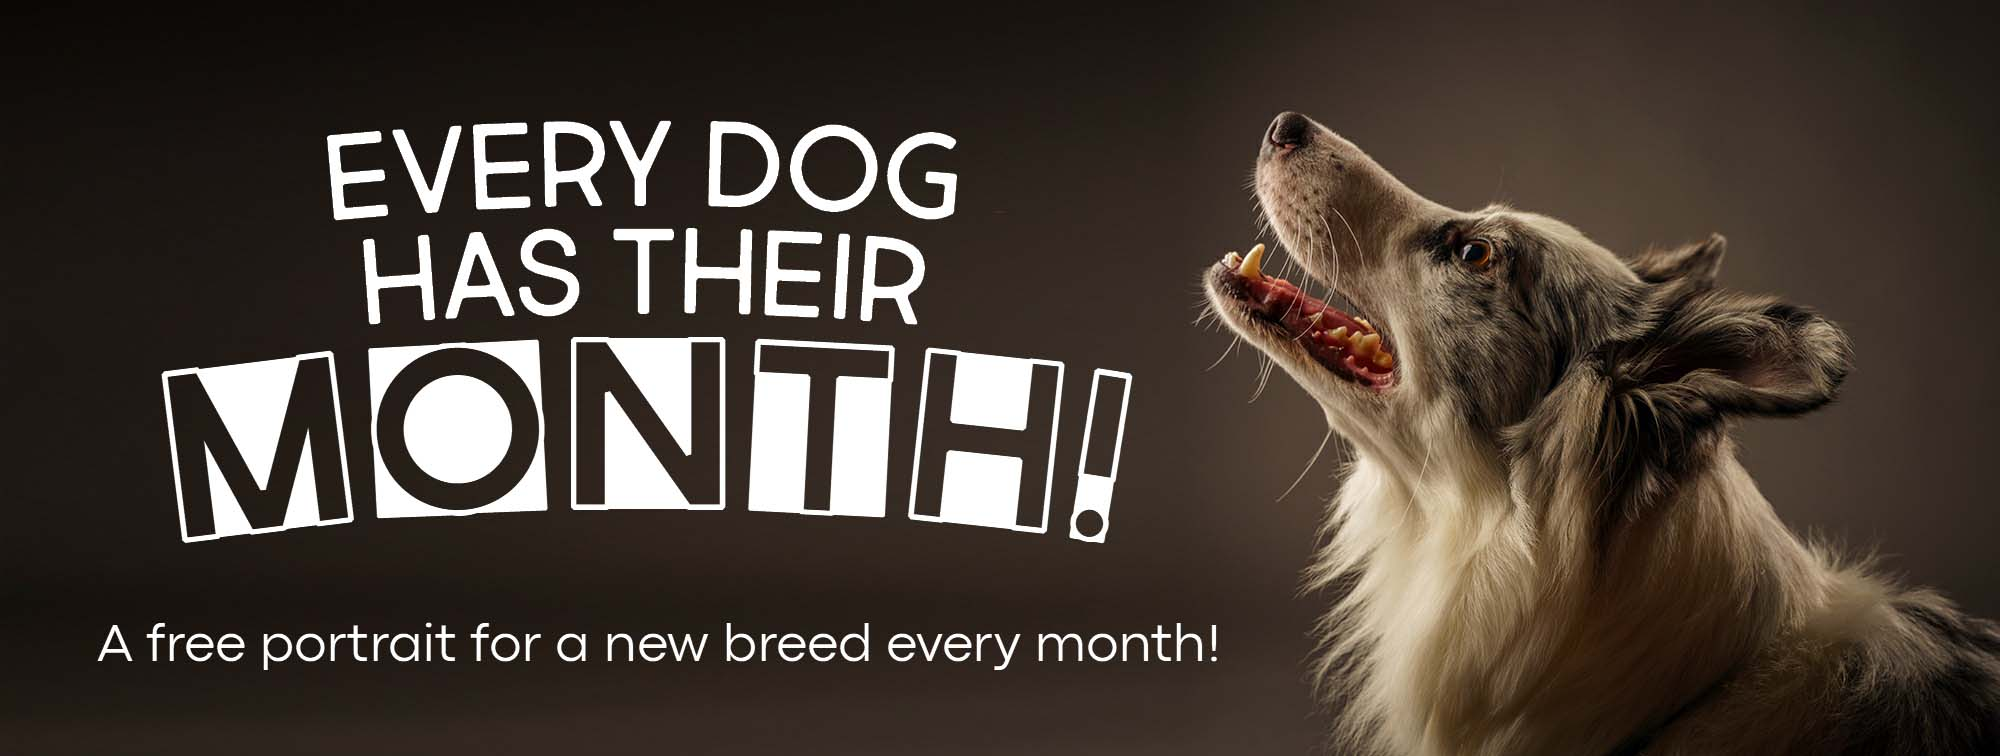 Every Dog Has Their Month